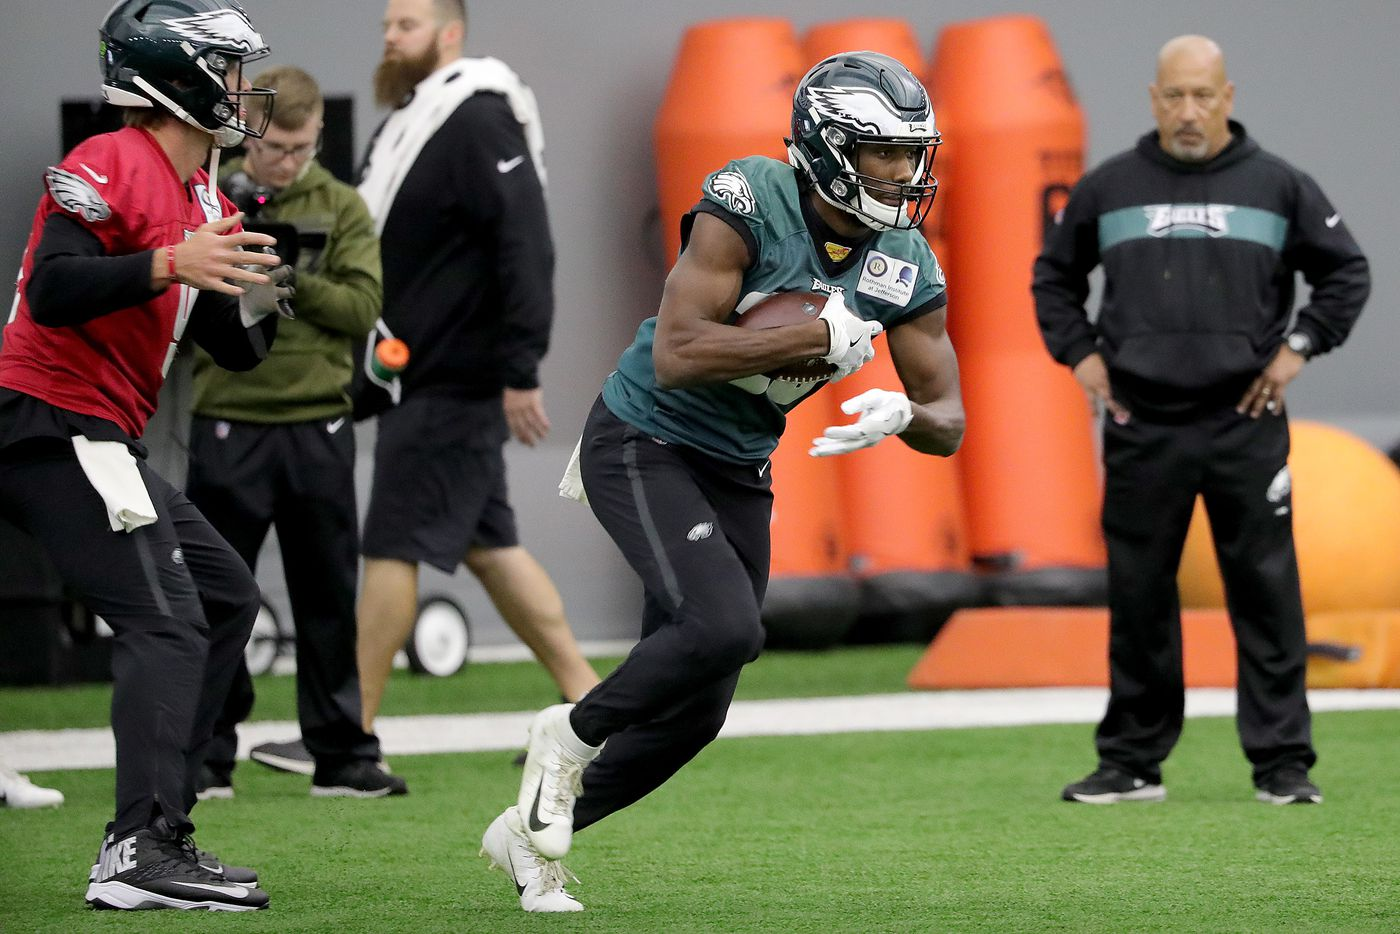 Malcolm Jenkins Flipped Off Sean Payton, Who Seemed to Love It